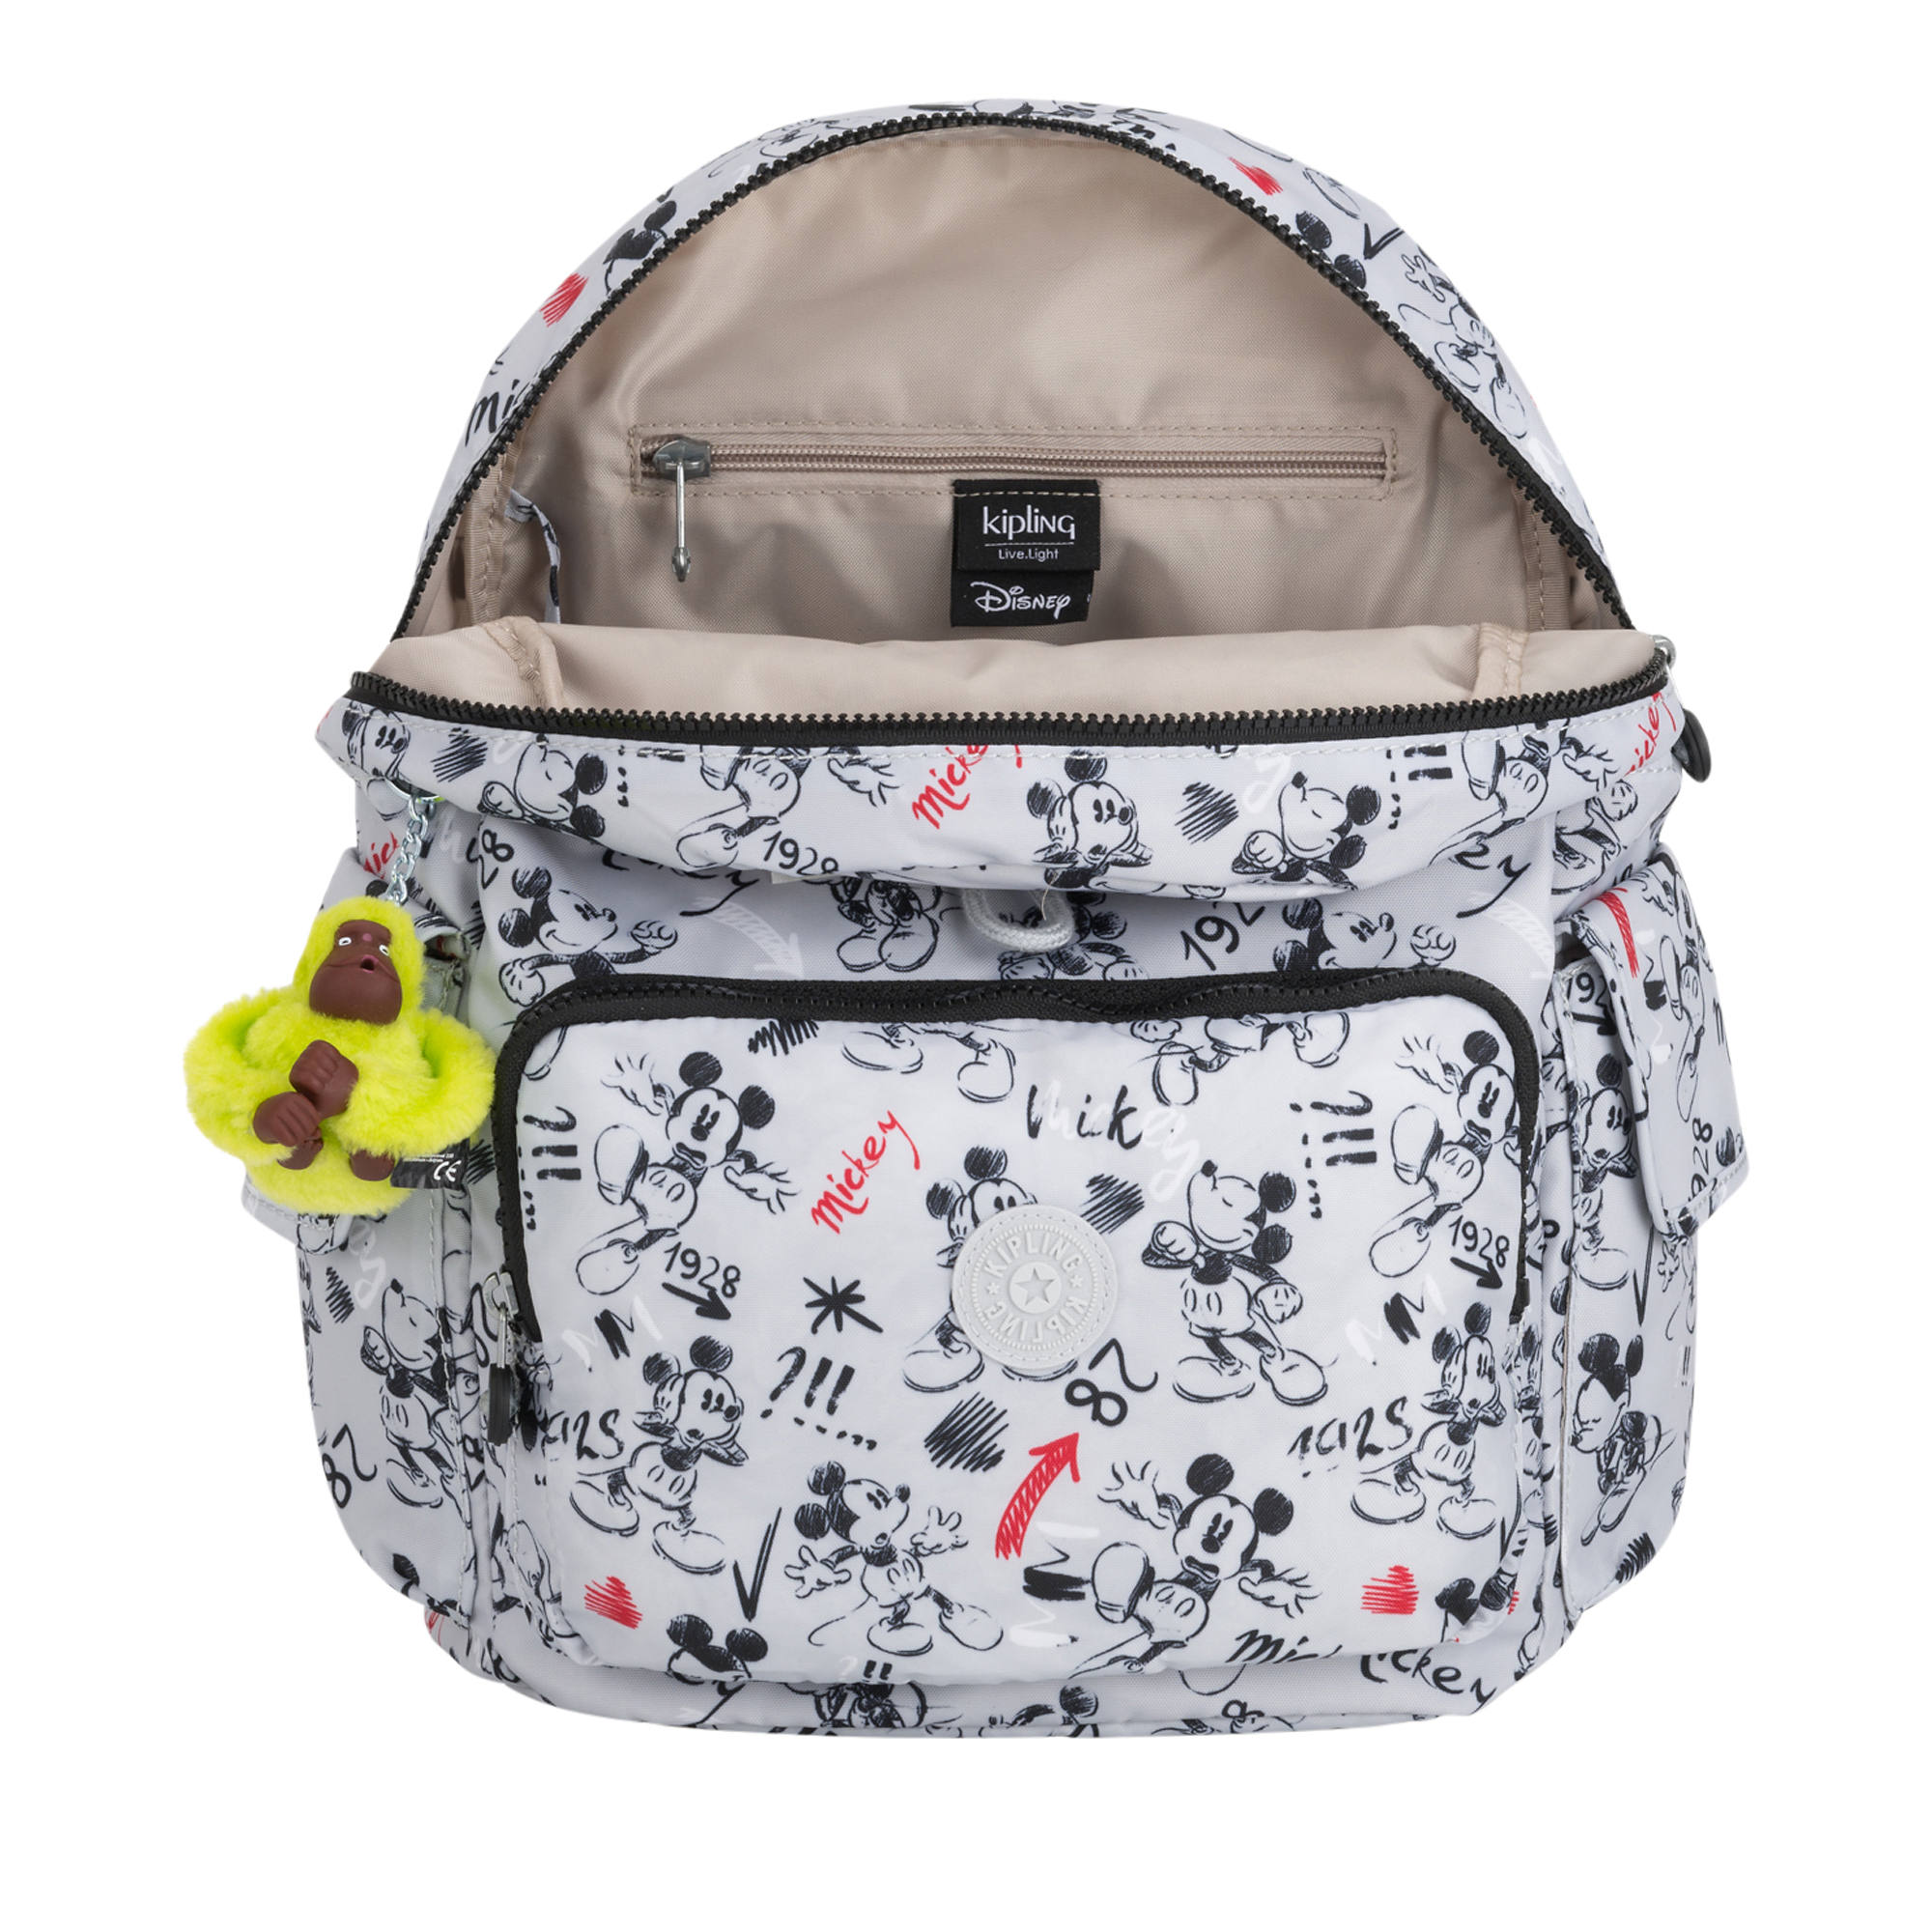 0d0b53998a94 Disney s 90 Years of Mickey Mouse Citypack Backpack